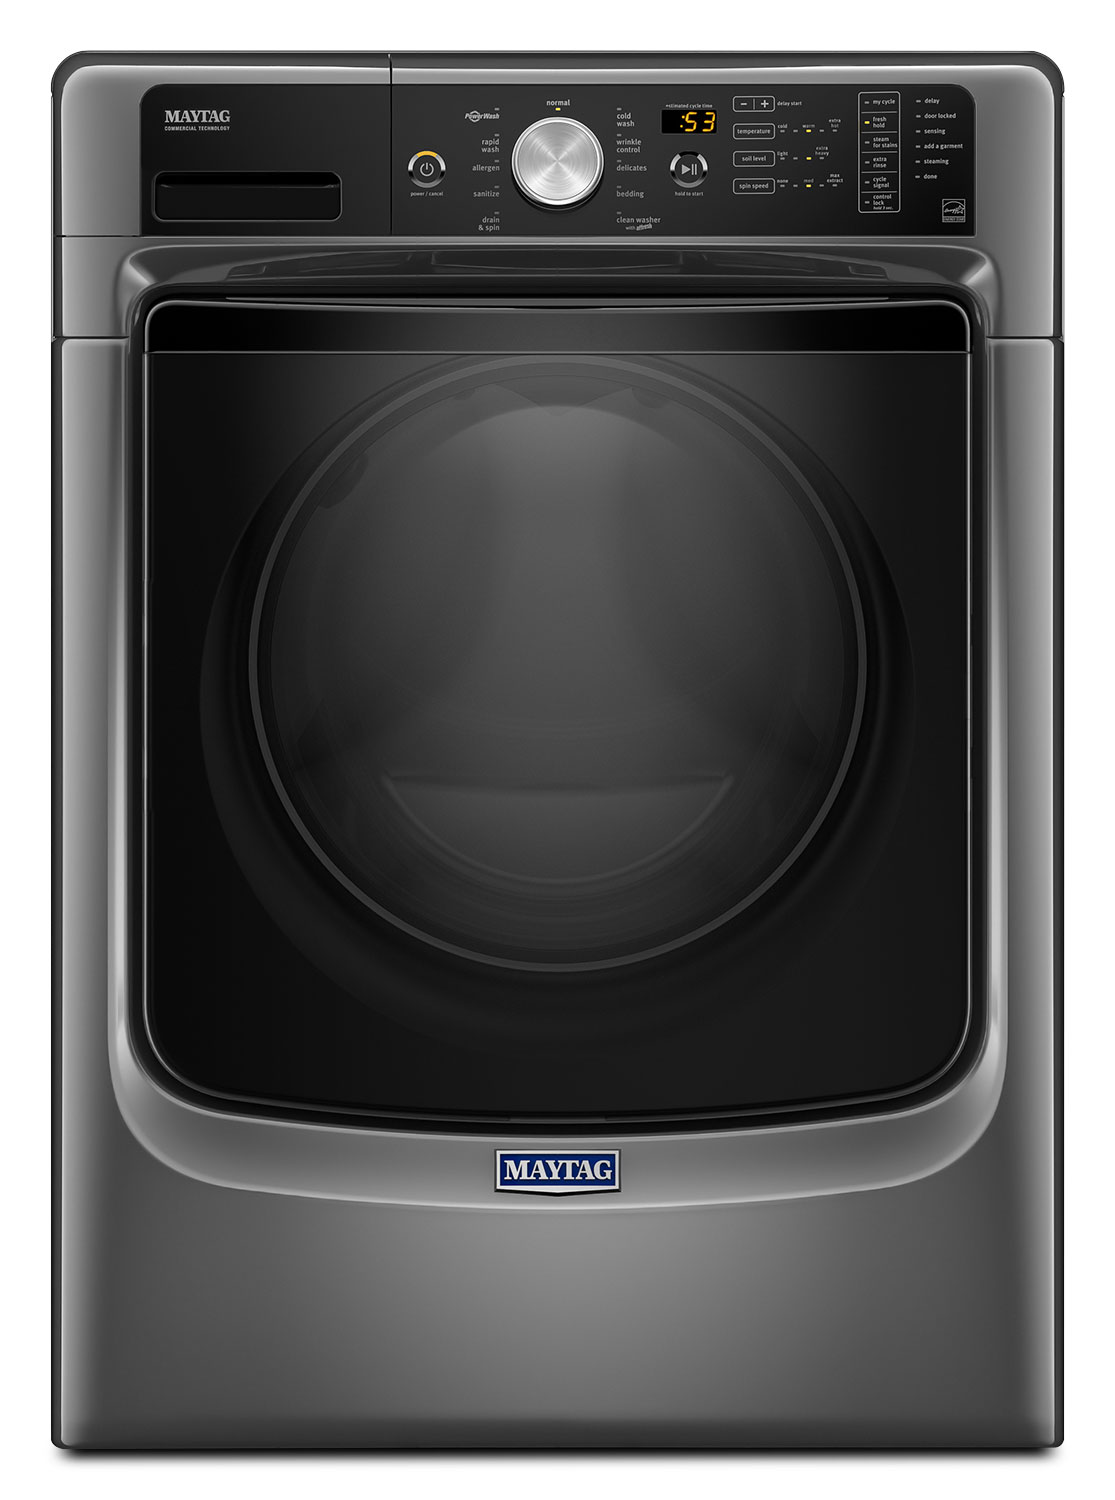 Maytag Metallic Slate Front-Load Washer (5.2 Cu. Ft. IEC) - MHW5500FC